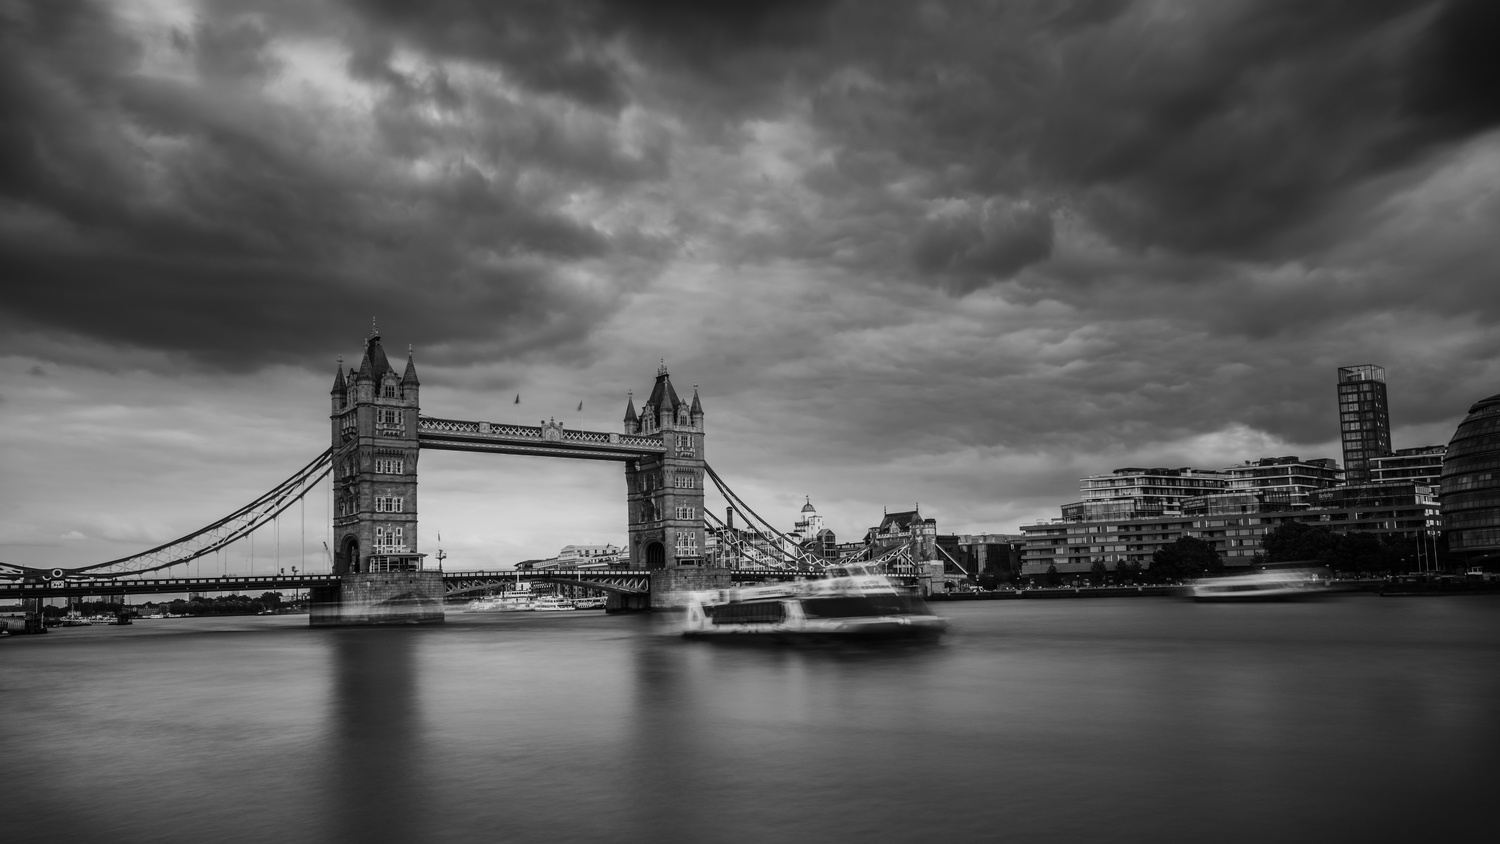 Cloudy Day by ismail hassanaly